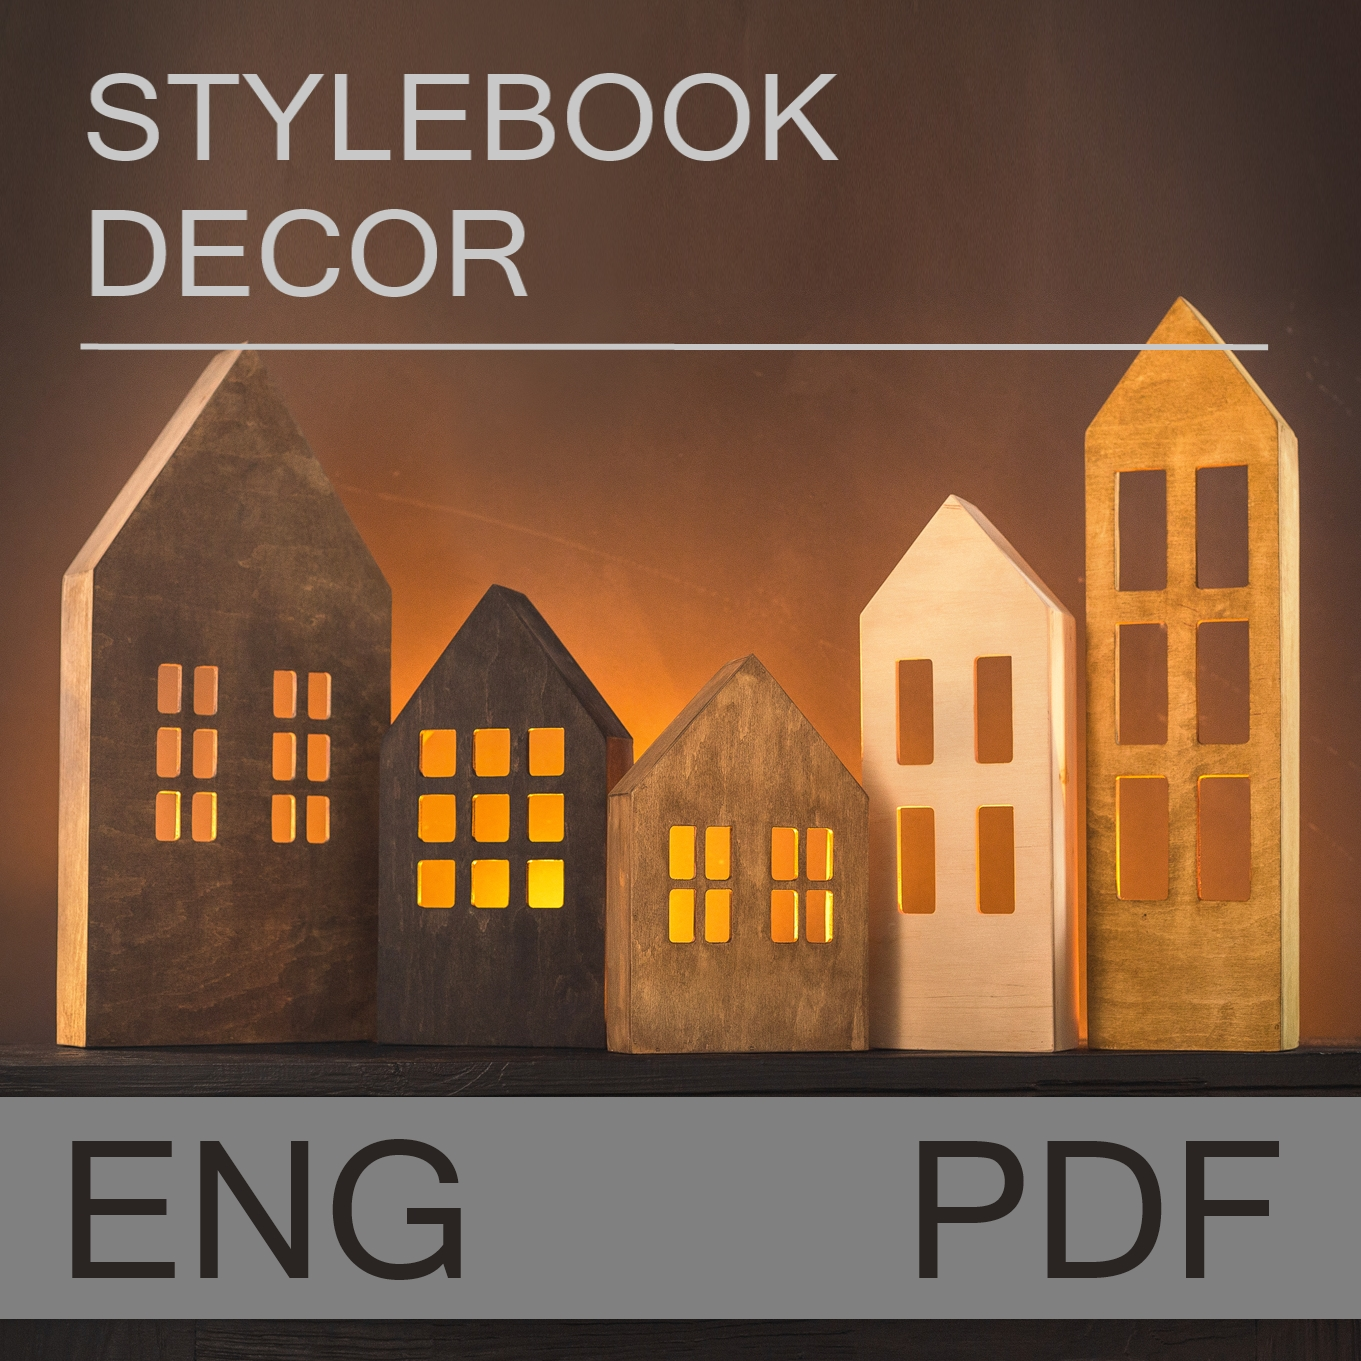 Download Woodville Stylebook Decor 2017 eng